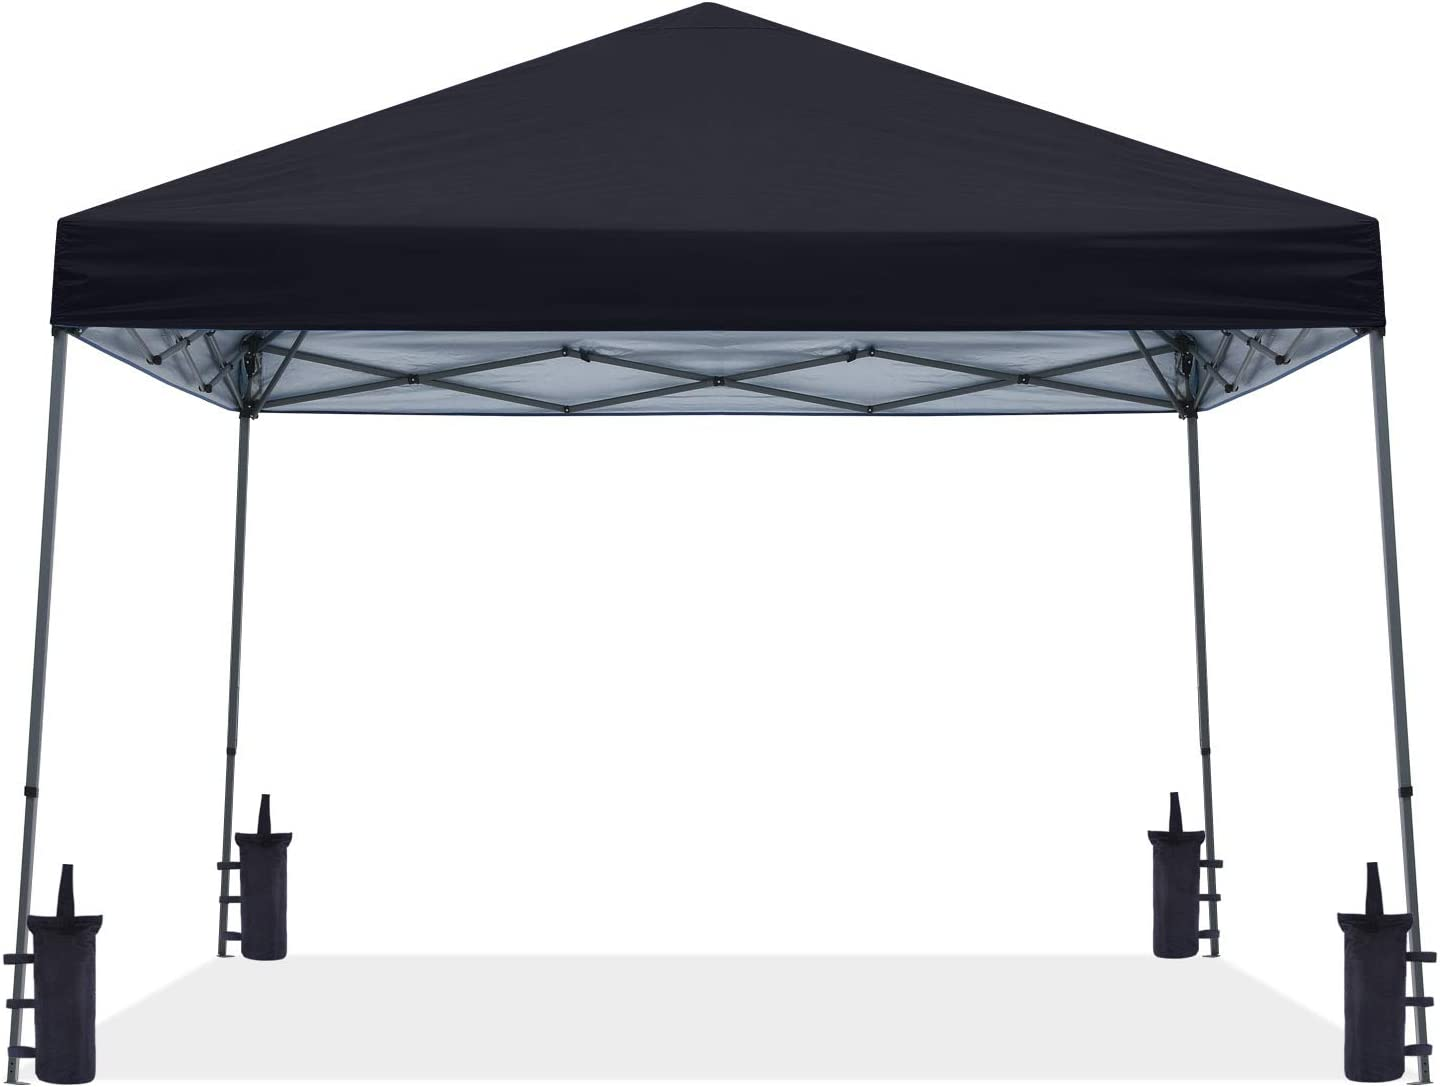 ABCCANOPY Stable Pop up Tent sale Outdoor Canopy Black Year-end gift